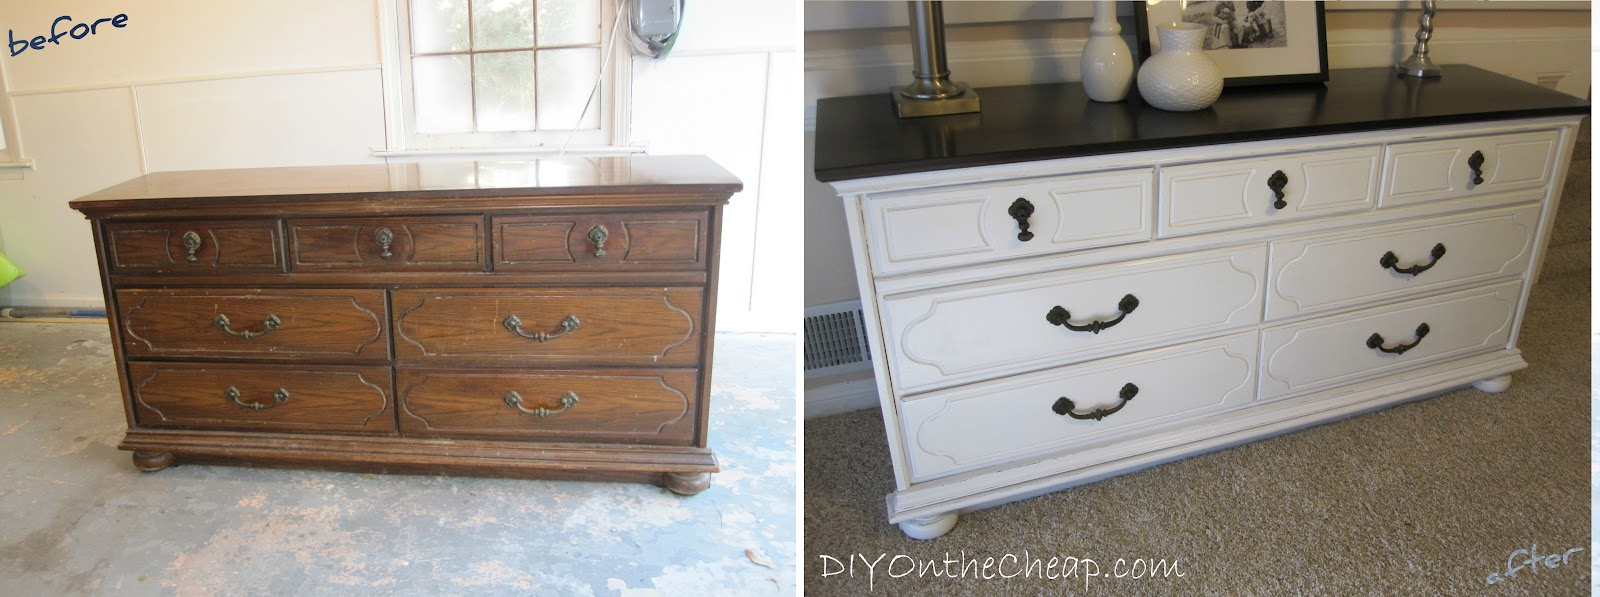 How To Refinish A Dresser Wood Furniture And Craft